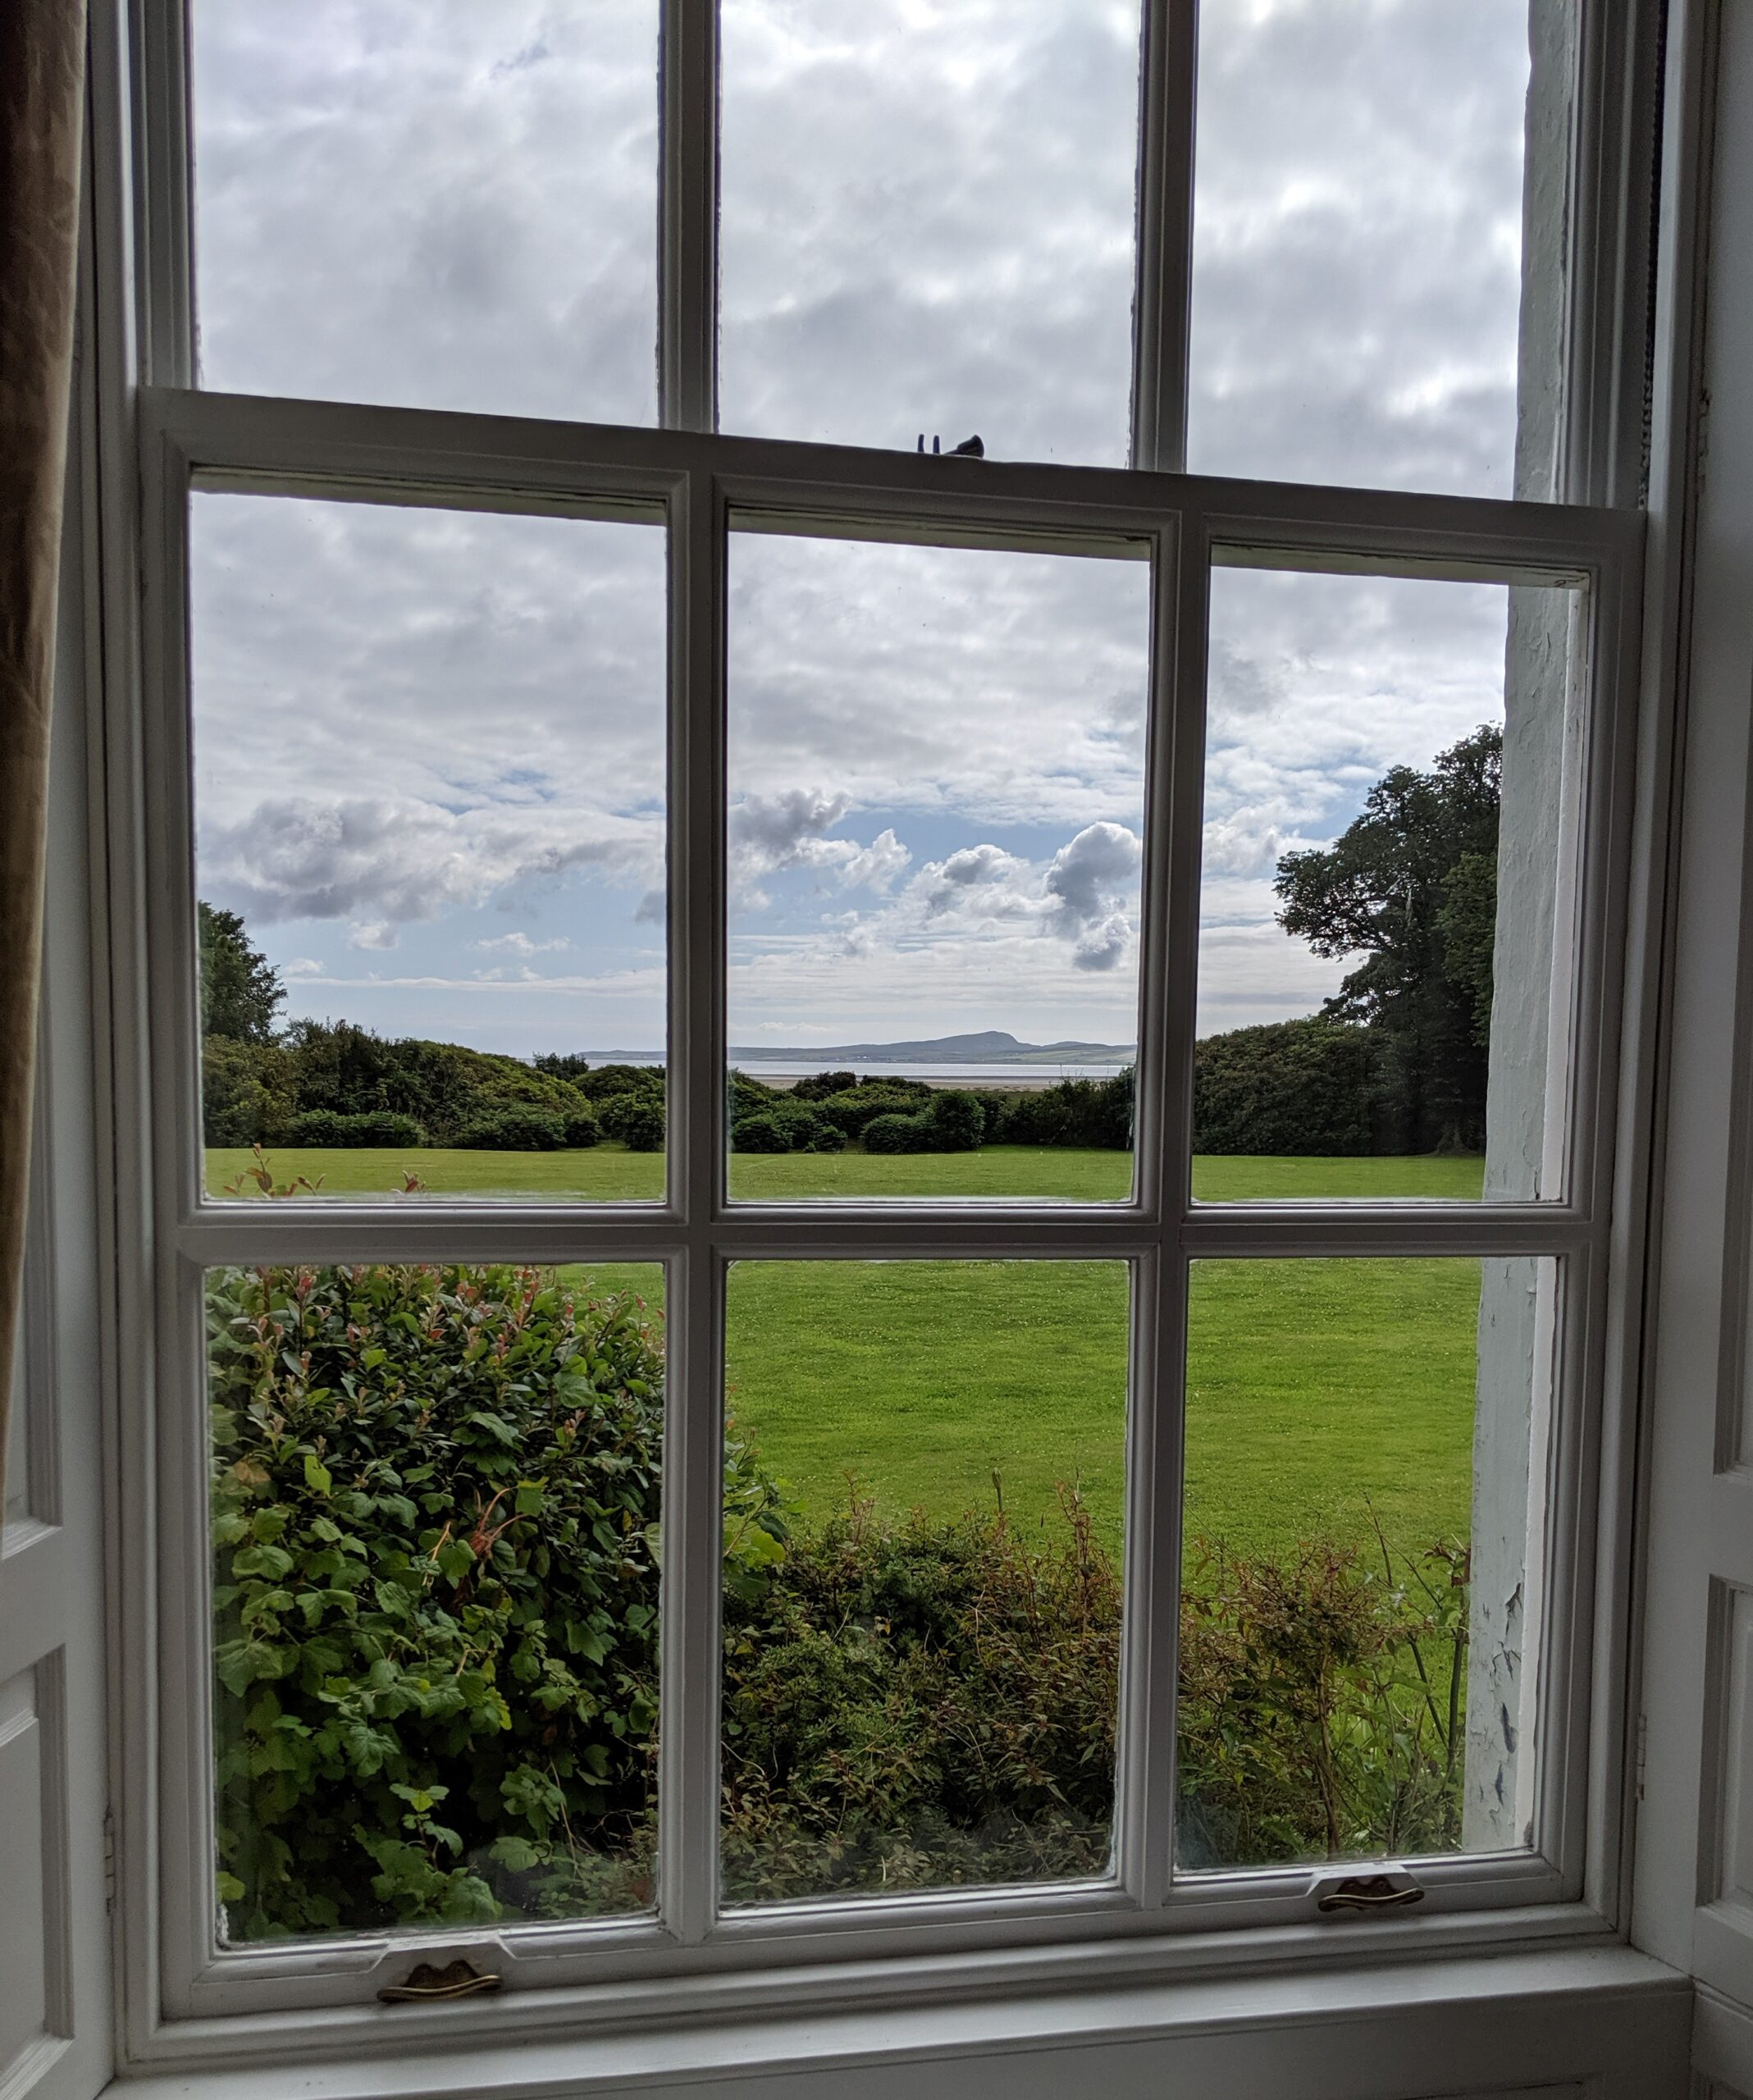 View from Islay House through nine panes of glass south across the estate's lawn toward Lochindaal Bay and the moors of Gearach.